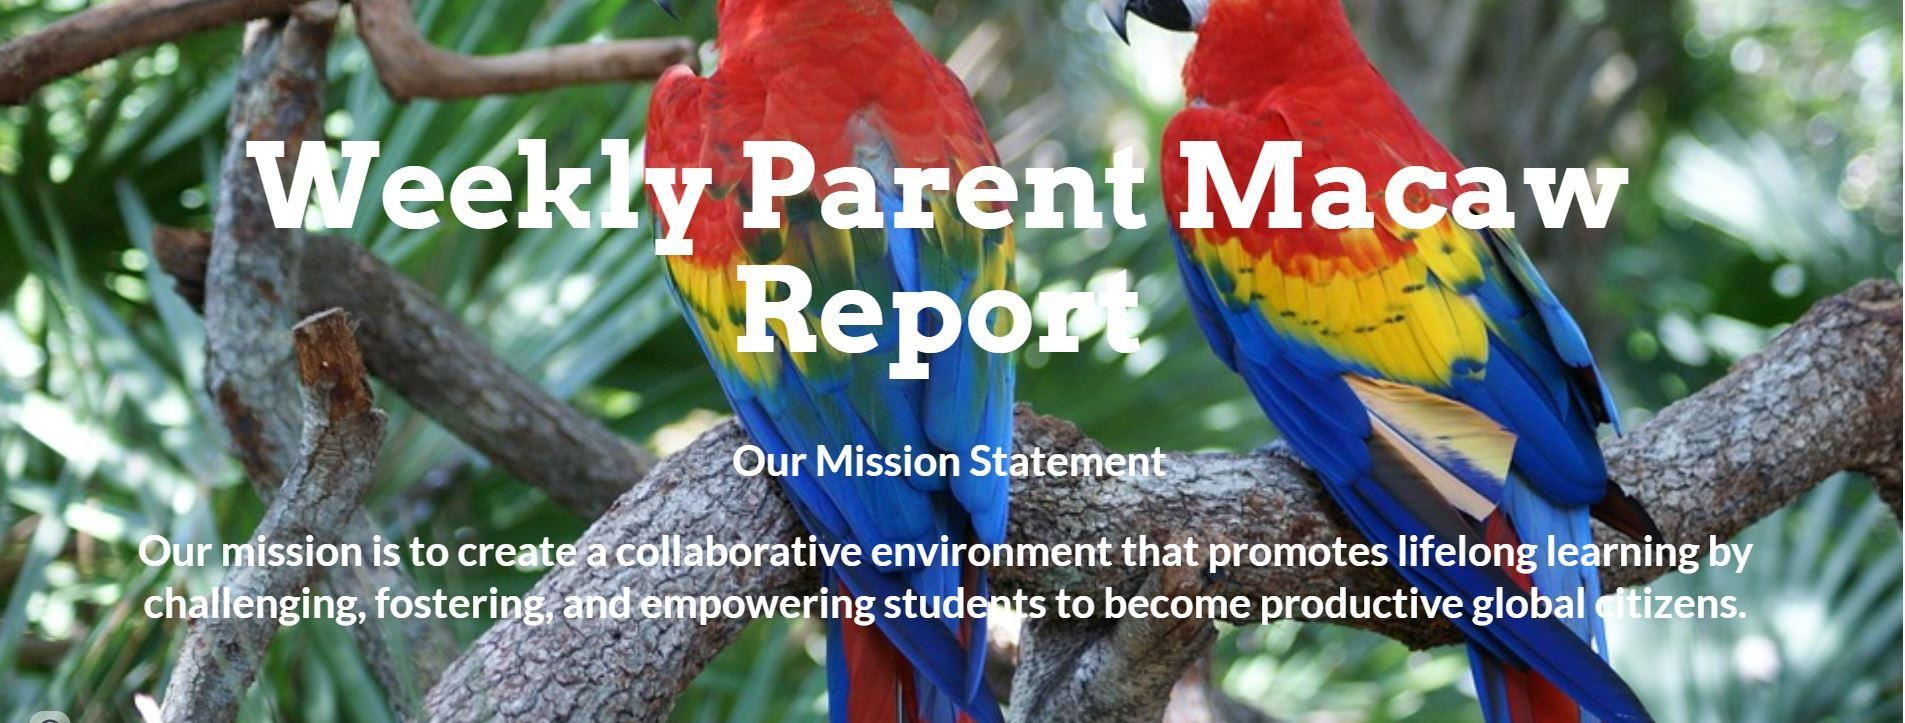 Weekly Parent Macaw Report